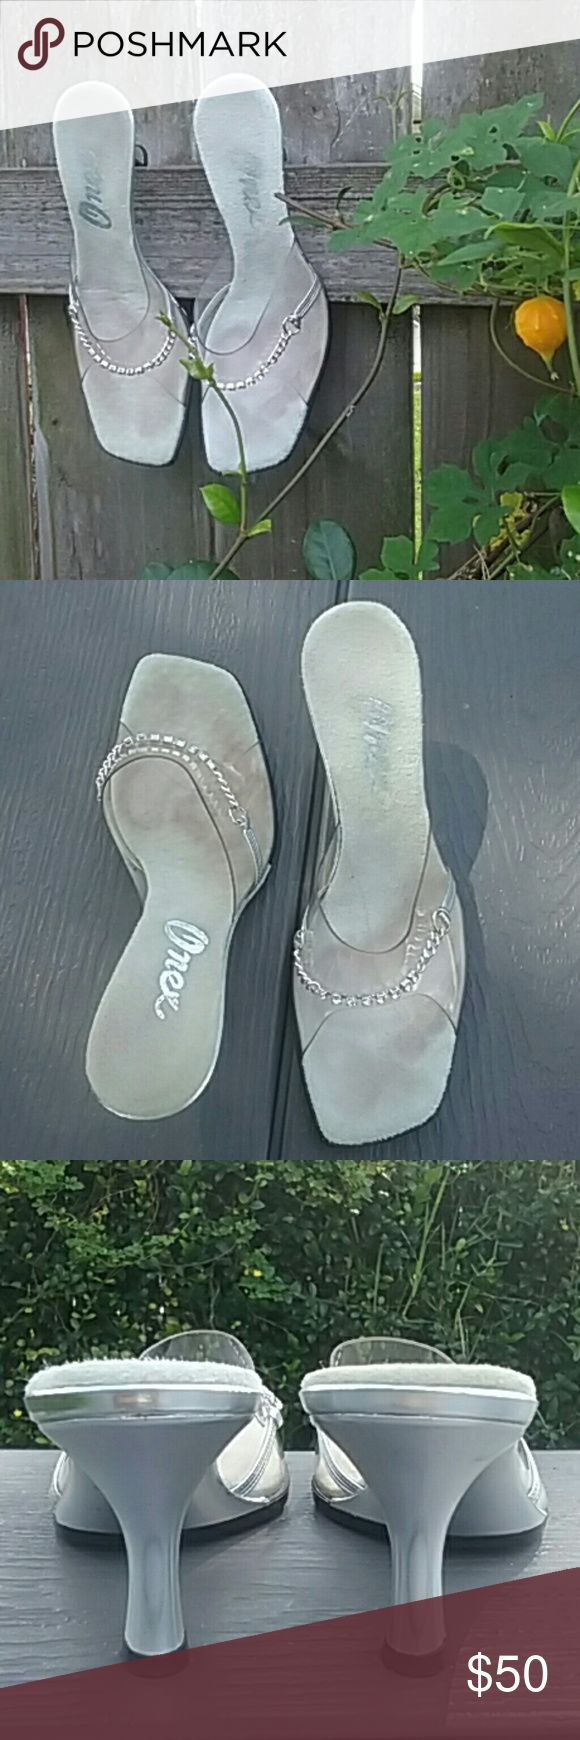 """Finest by Onex Shoes Size 8**Siver/Clear slip ons with Rhinestone strap. Beautiful condition, other than normal wear in toe area. Heel size 2 1/2-3"""". Onex Shoes"""